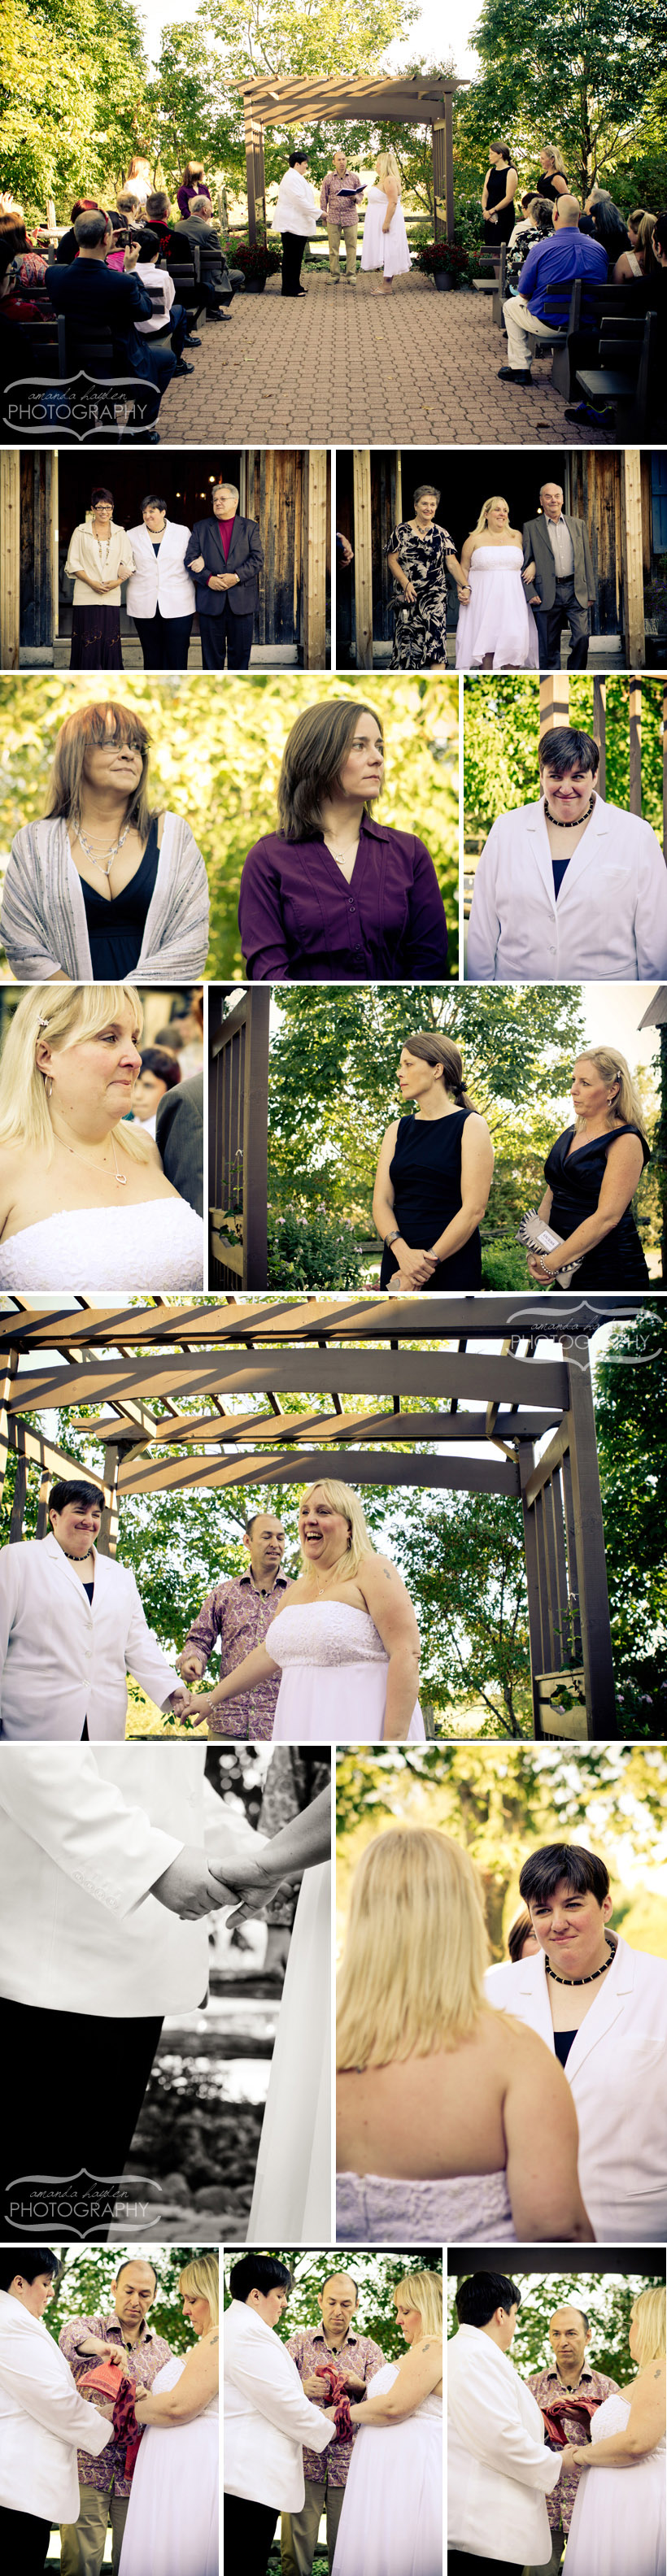 Ottawa Portrait Photographer, Ottawa Wedding Photographer, Strathmere Wedding, Ottawa